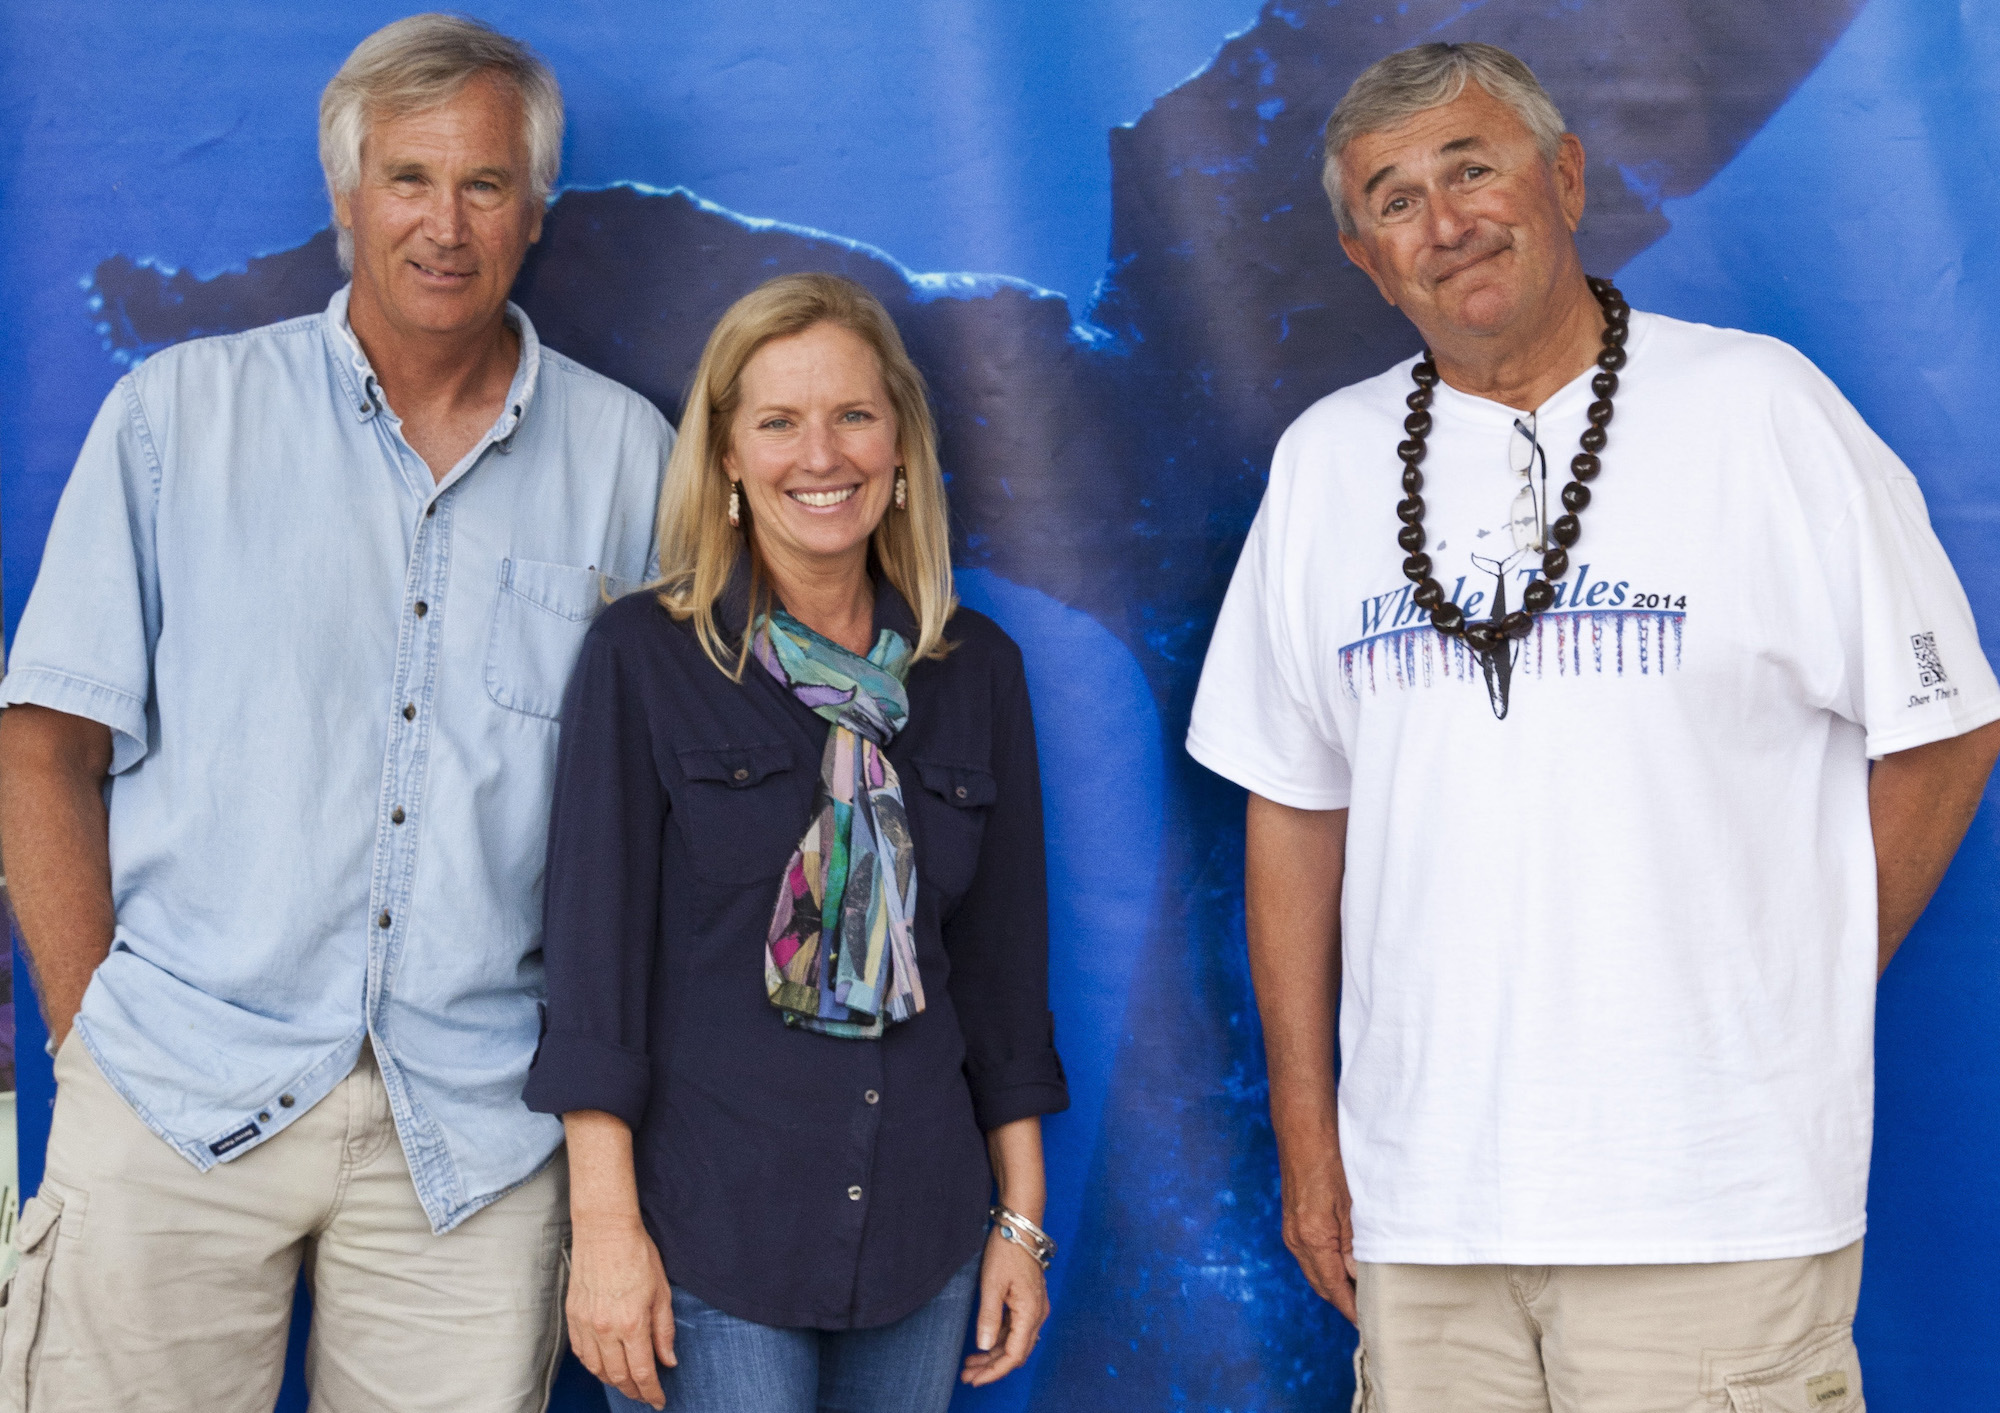 Whale Trust Co-Founders Jim Darling, Meagan Jones, and Flip Nicklin